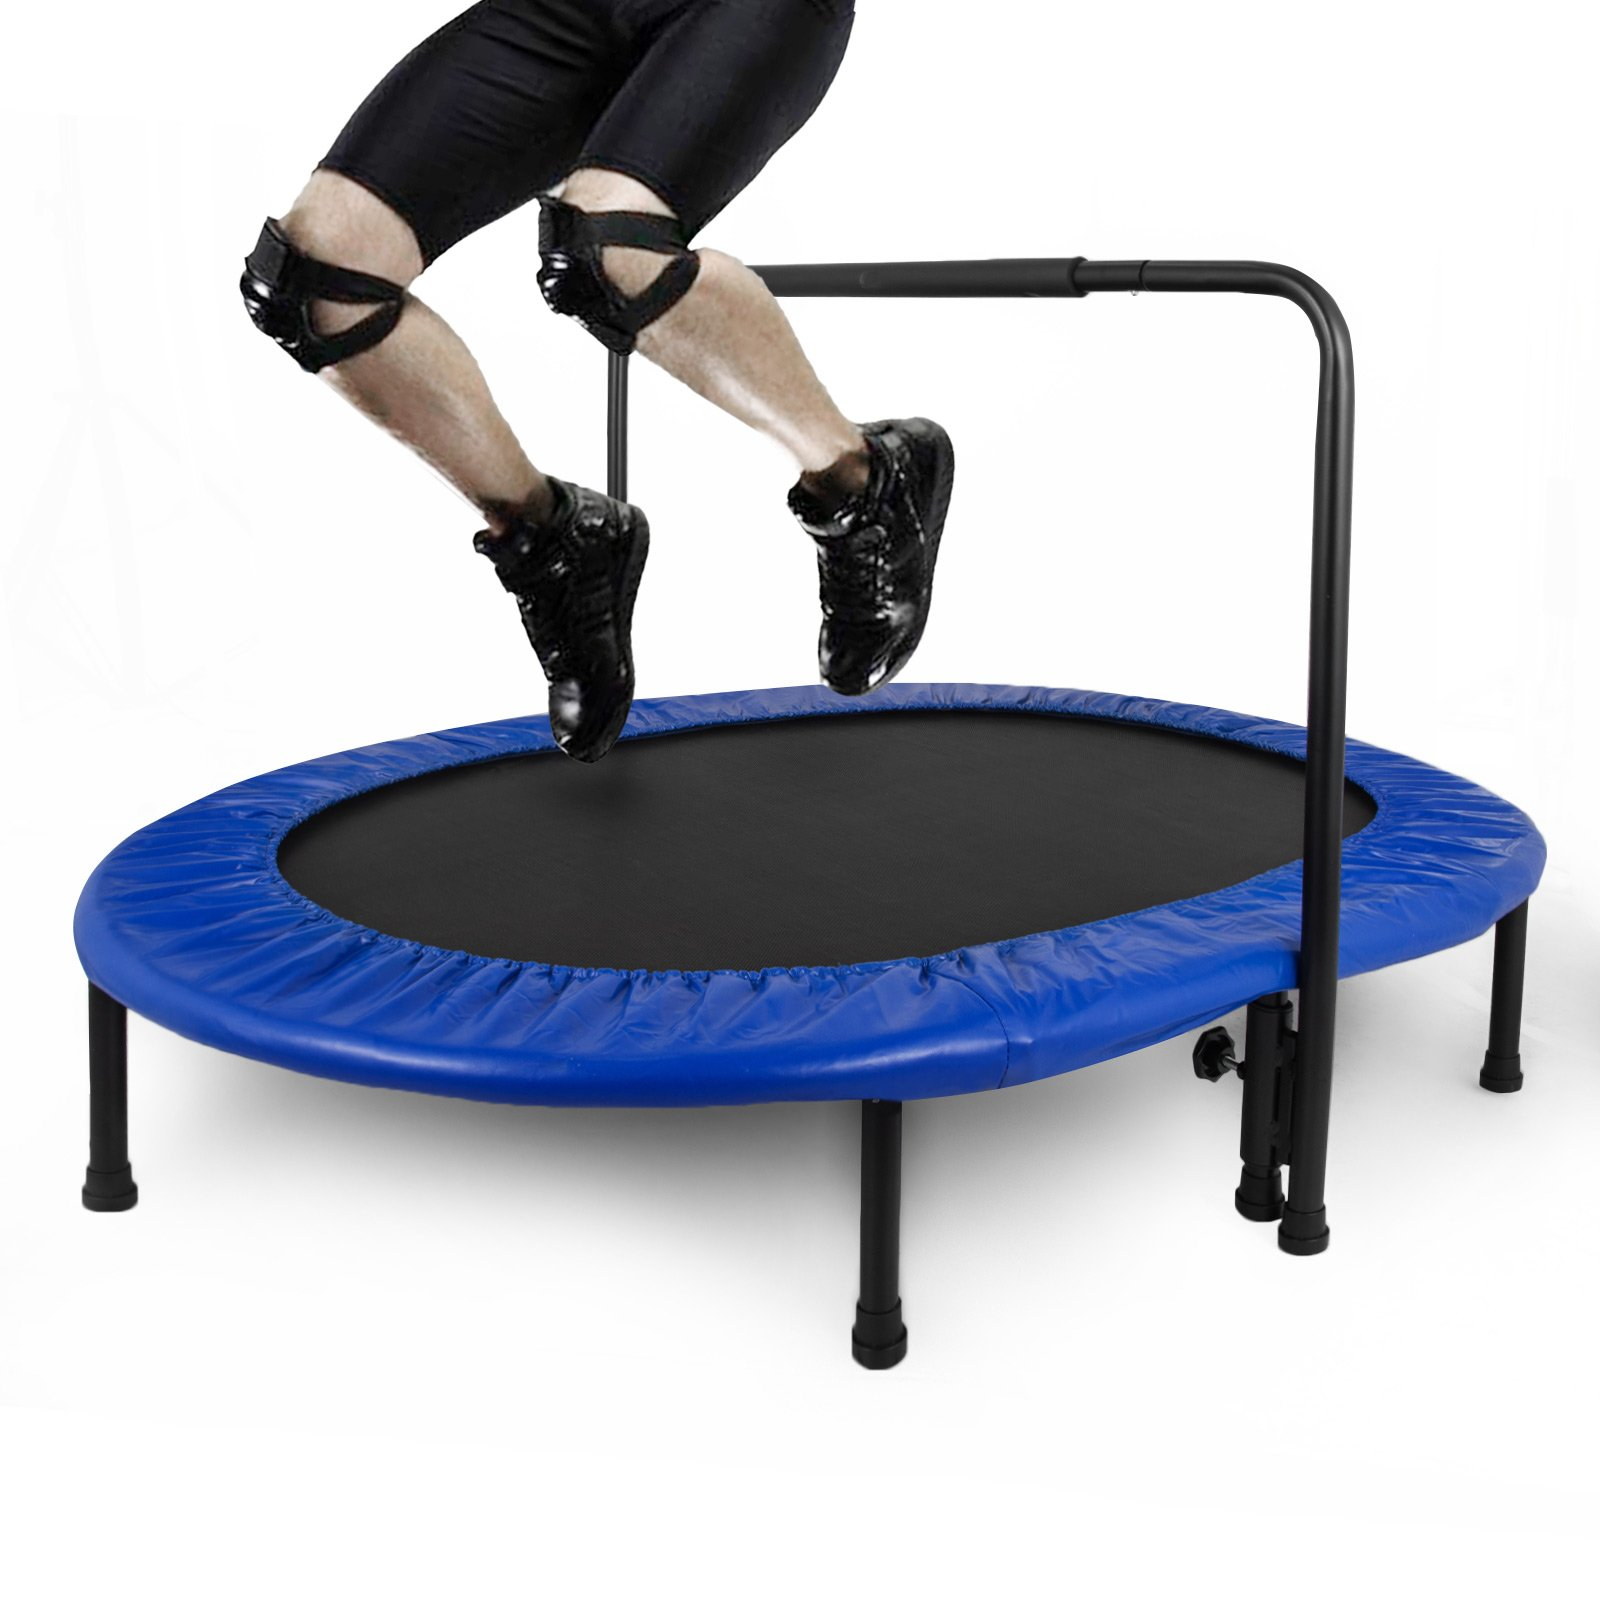 Popsport Mini Trampoline 220/330 lbs Fitness Trampoline In-Home Rebounder with Bungee Cover and Rubber Bungees for Home Cardio Exercise (56''x35''x9'')